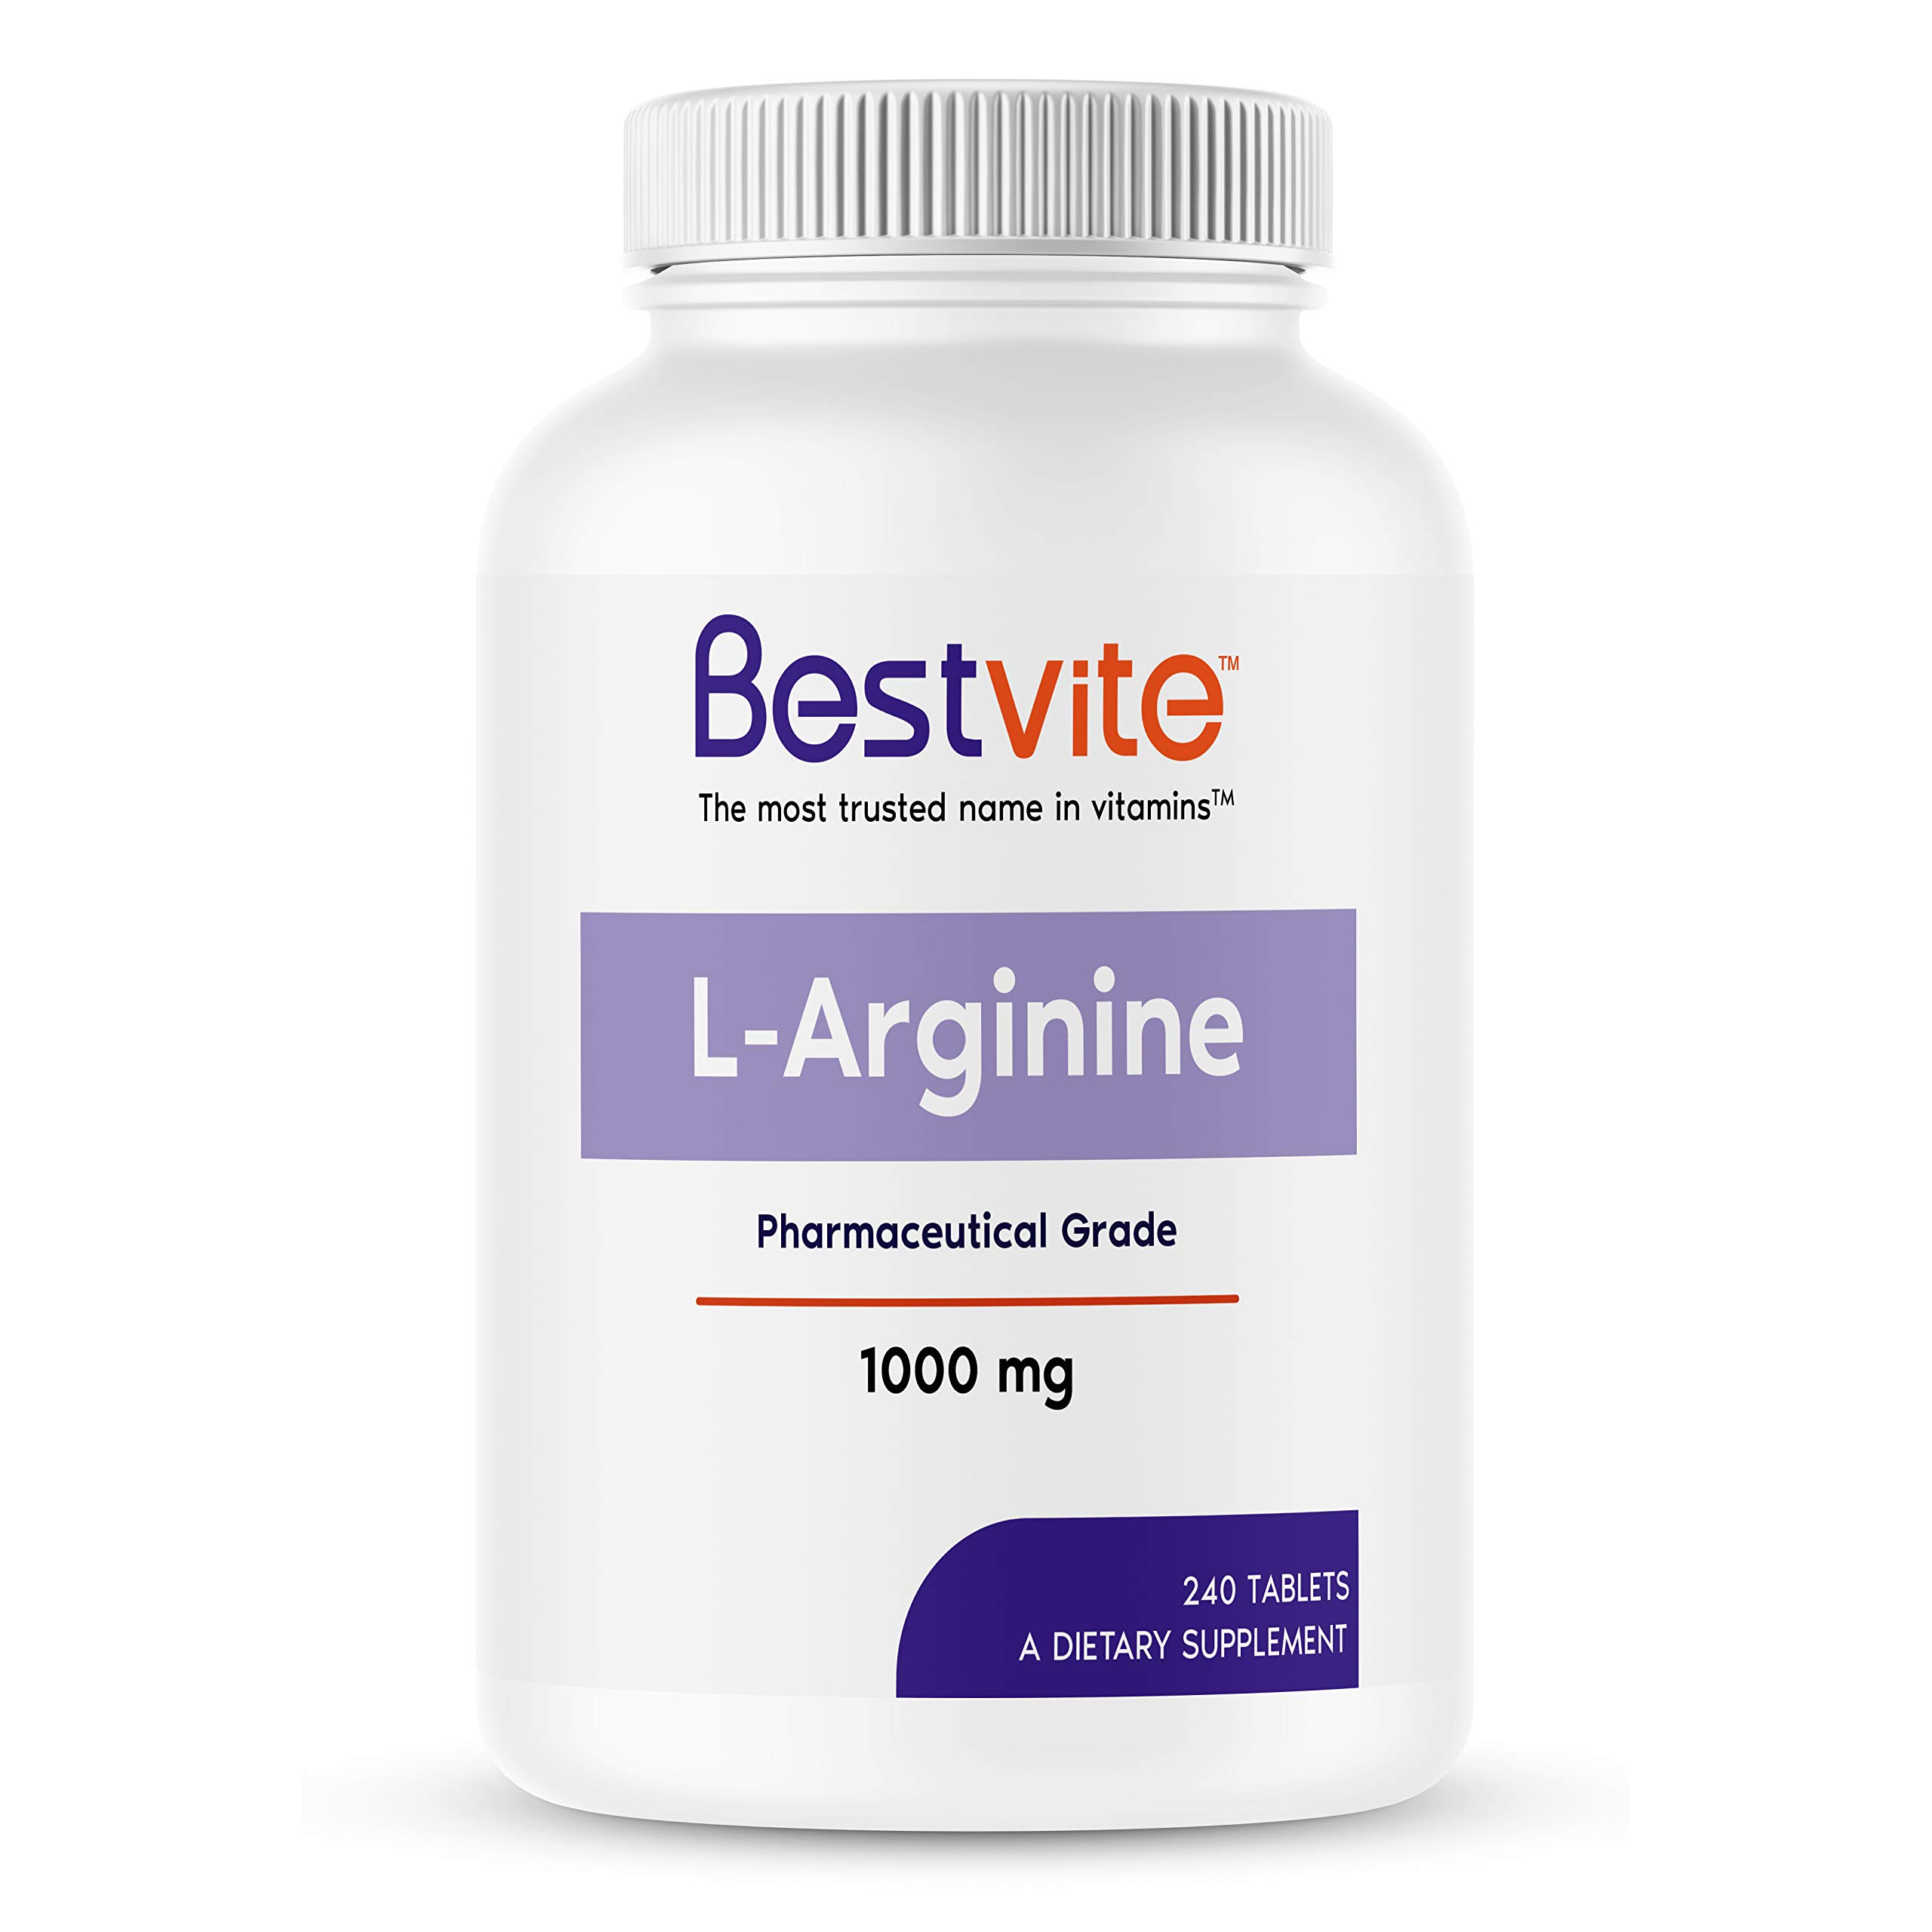 L-Arginine 1000mg (240 Tablets) containing 20% More Pure L-Arginine as Compared to L-Arginine HCL Products by BESTVITE